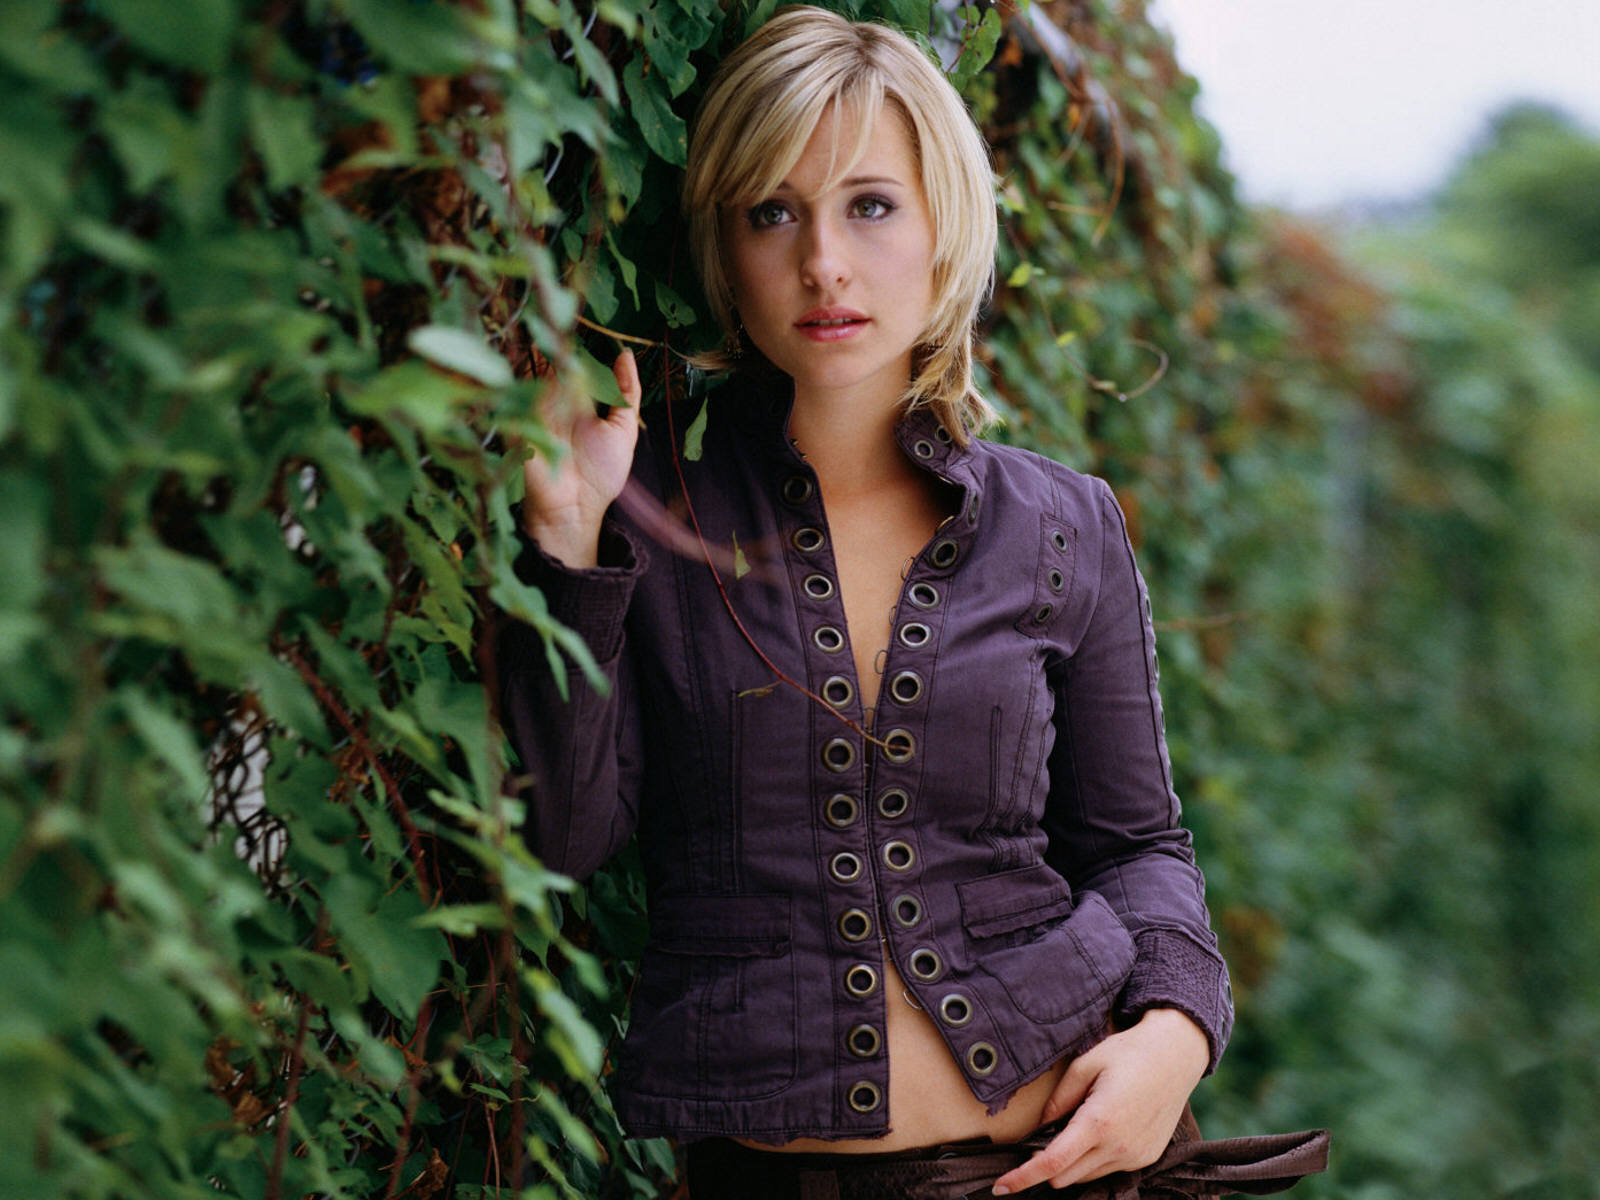 Allison Mack New Hot HD Wallpaper 2013 Hollywood Universe 1600x1200